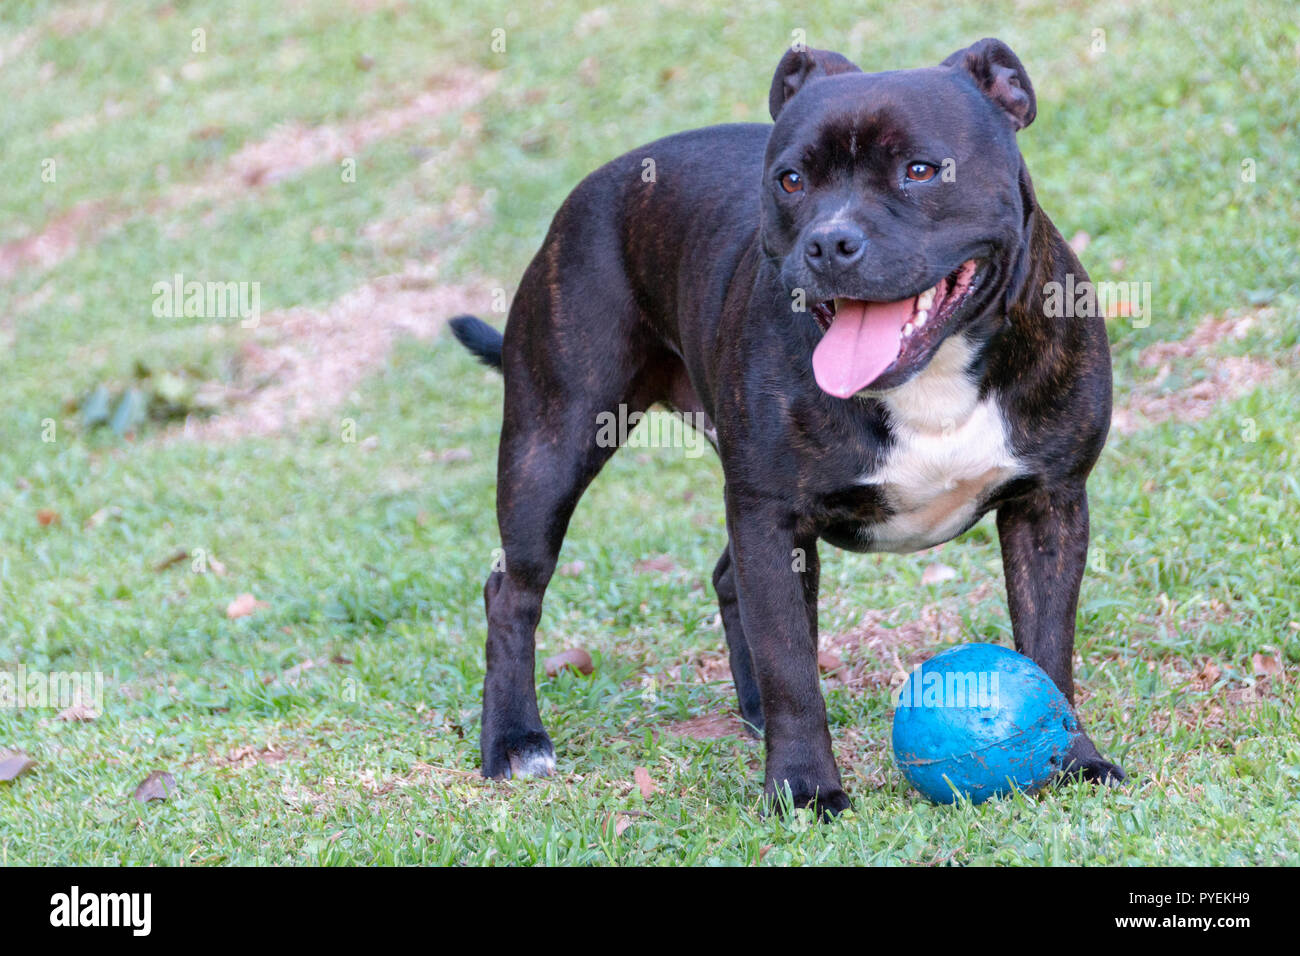 A close up side view of a black and white dog playing with his blue chew toy in the garden - Stock Image